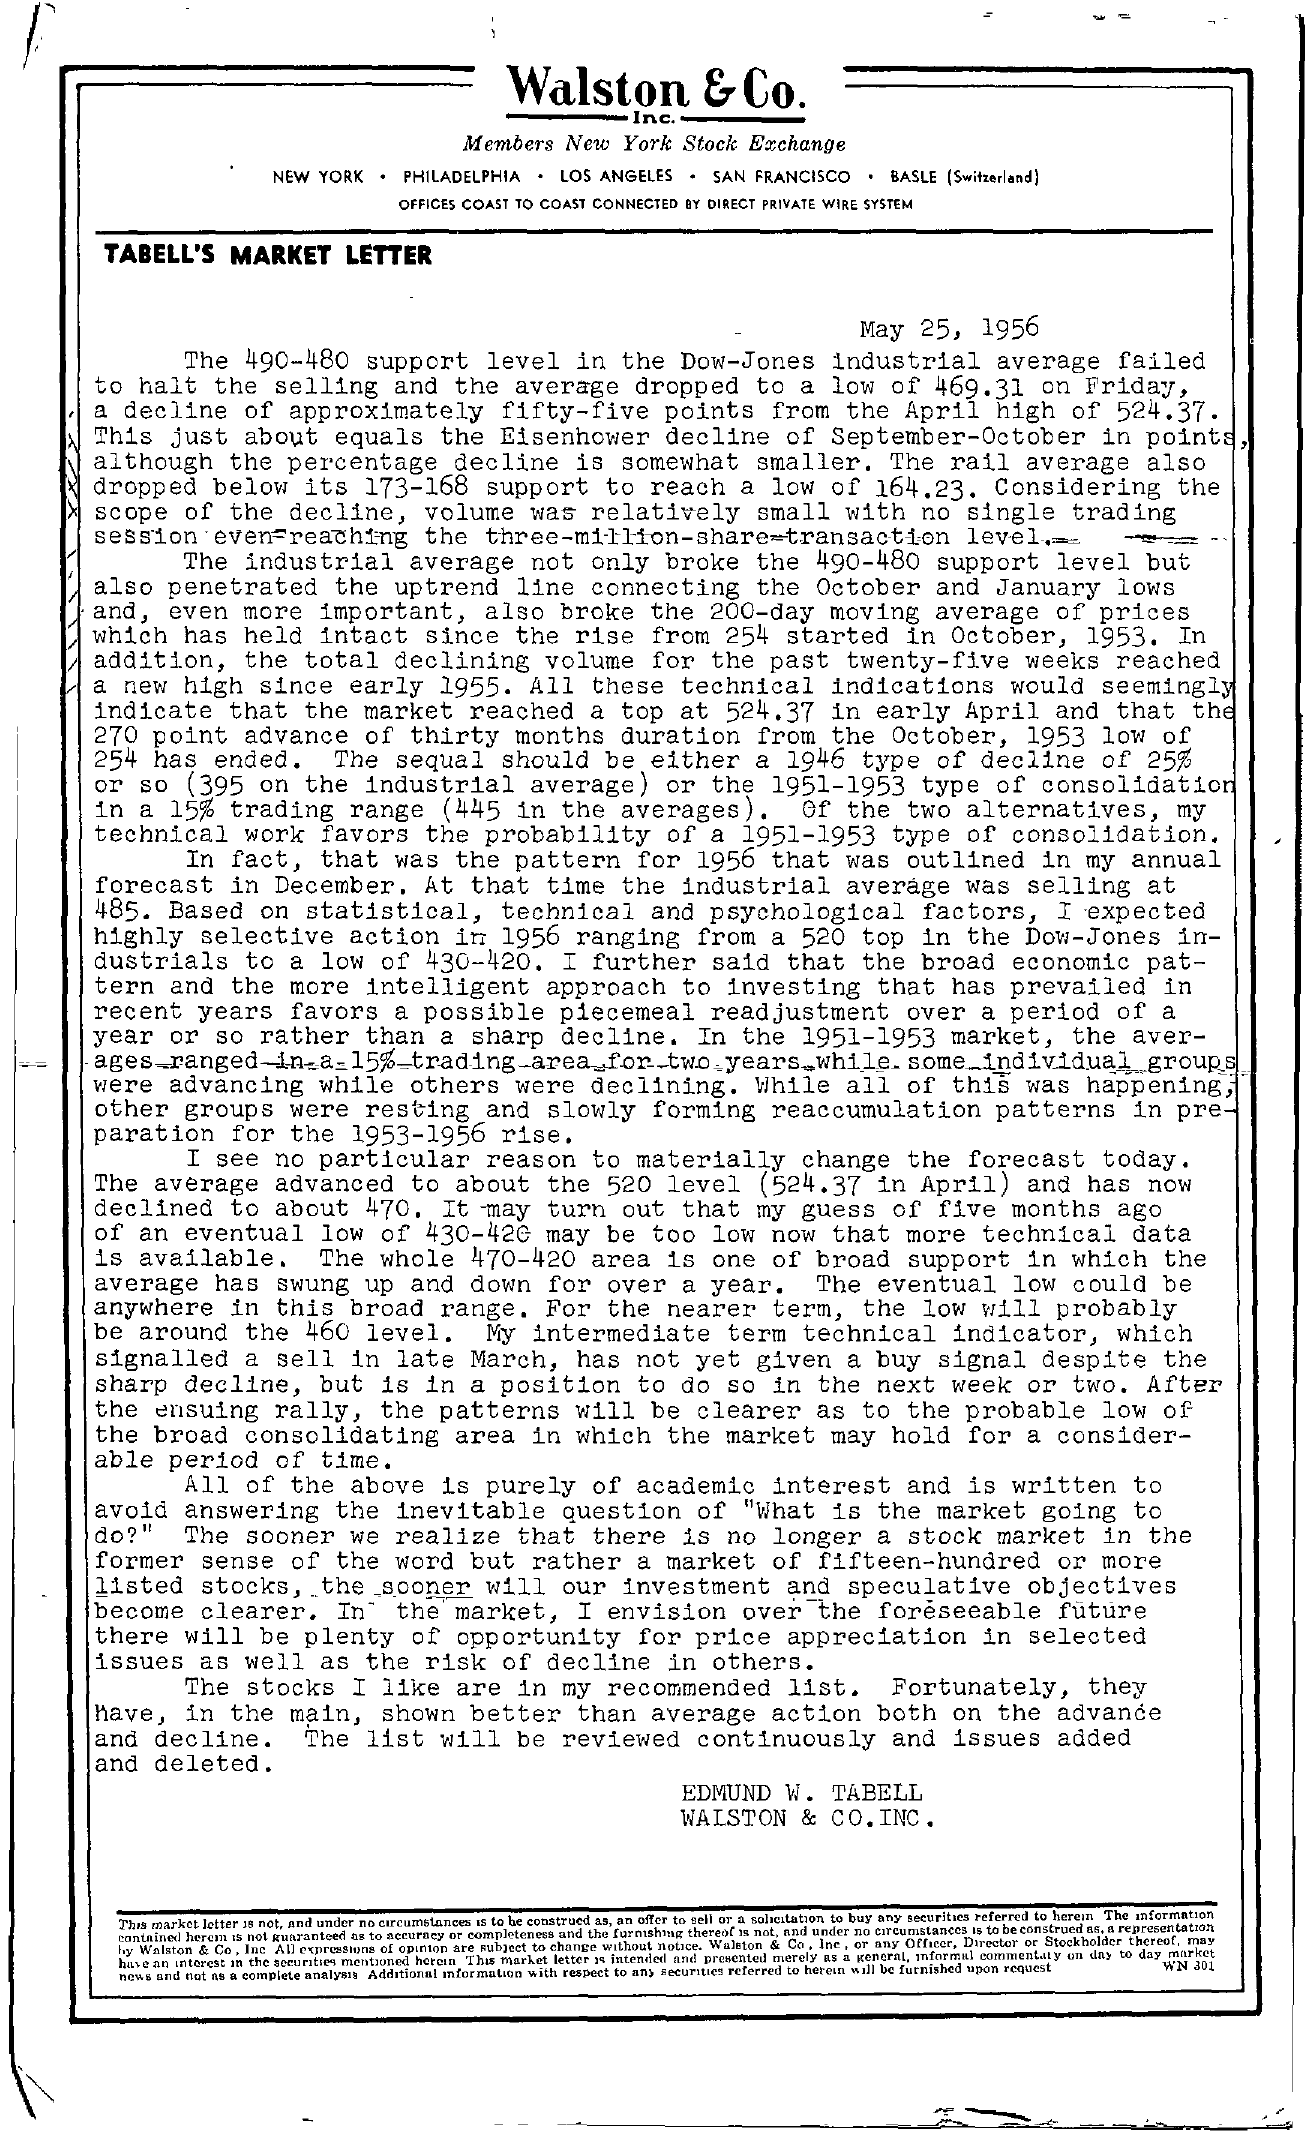 Tabell's Market Letter - May 25, 1956